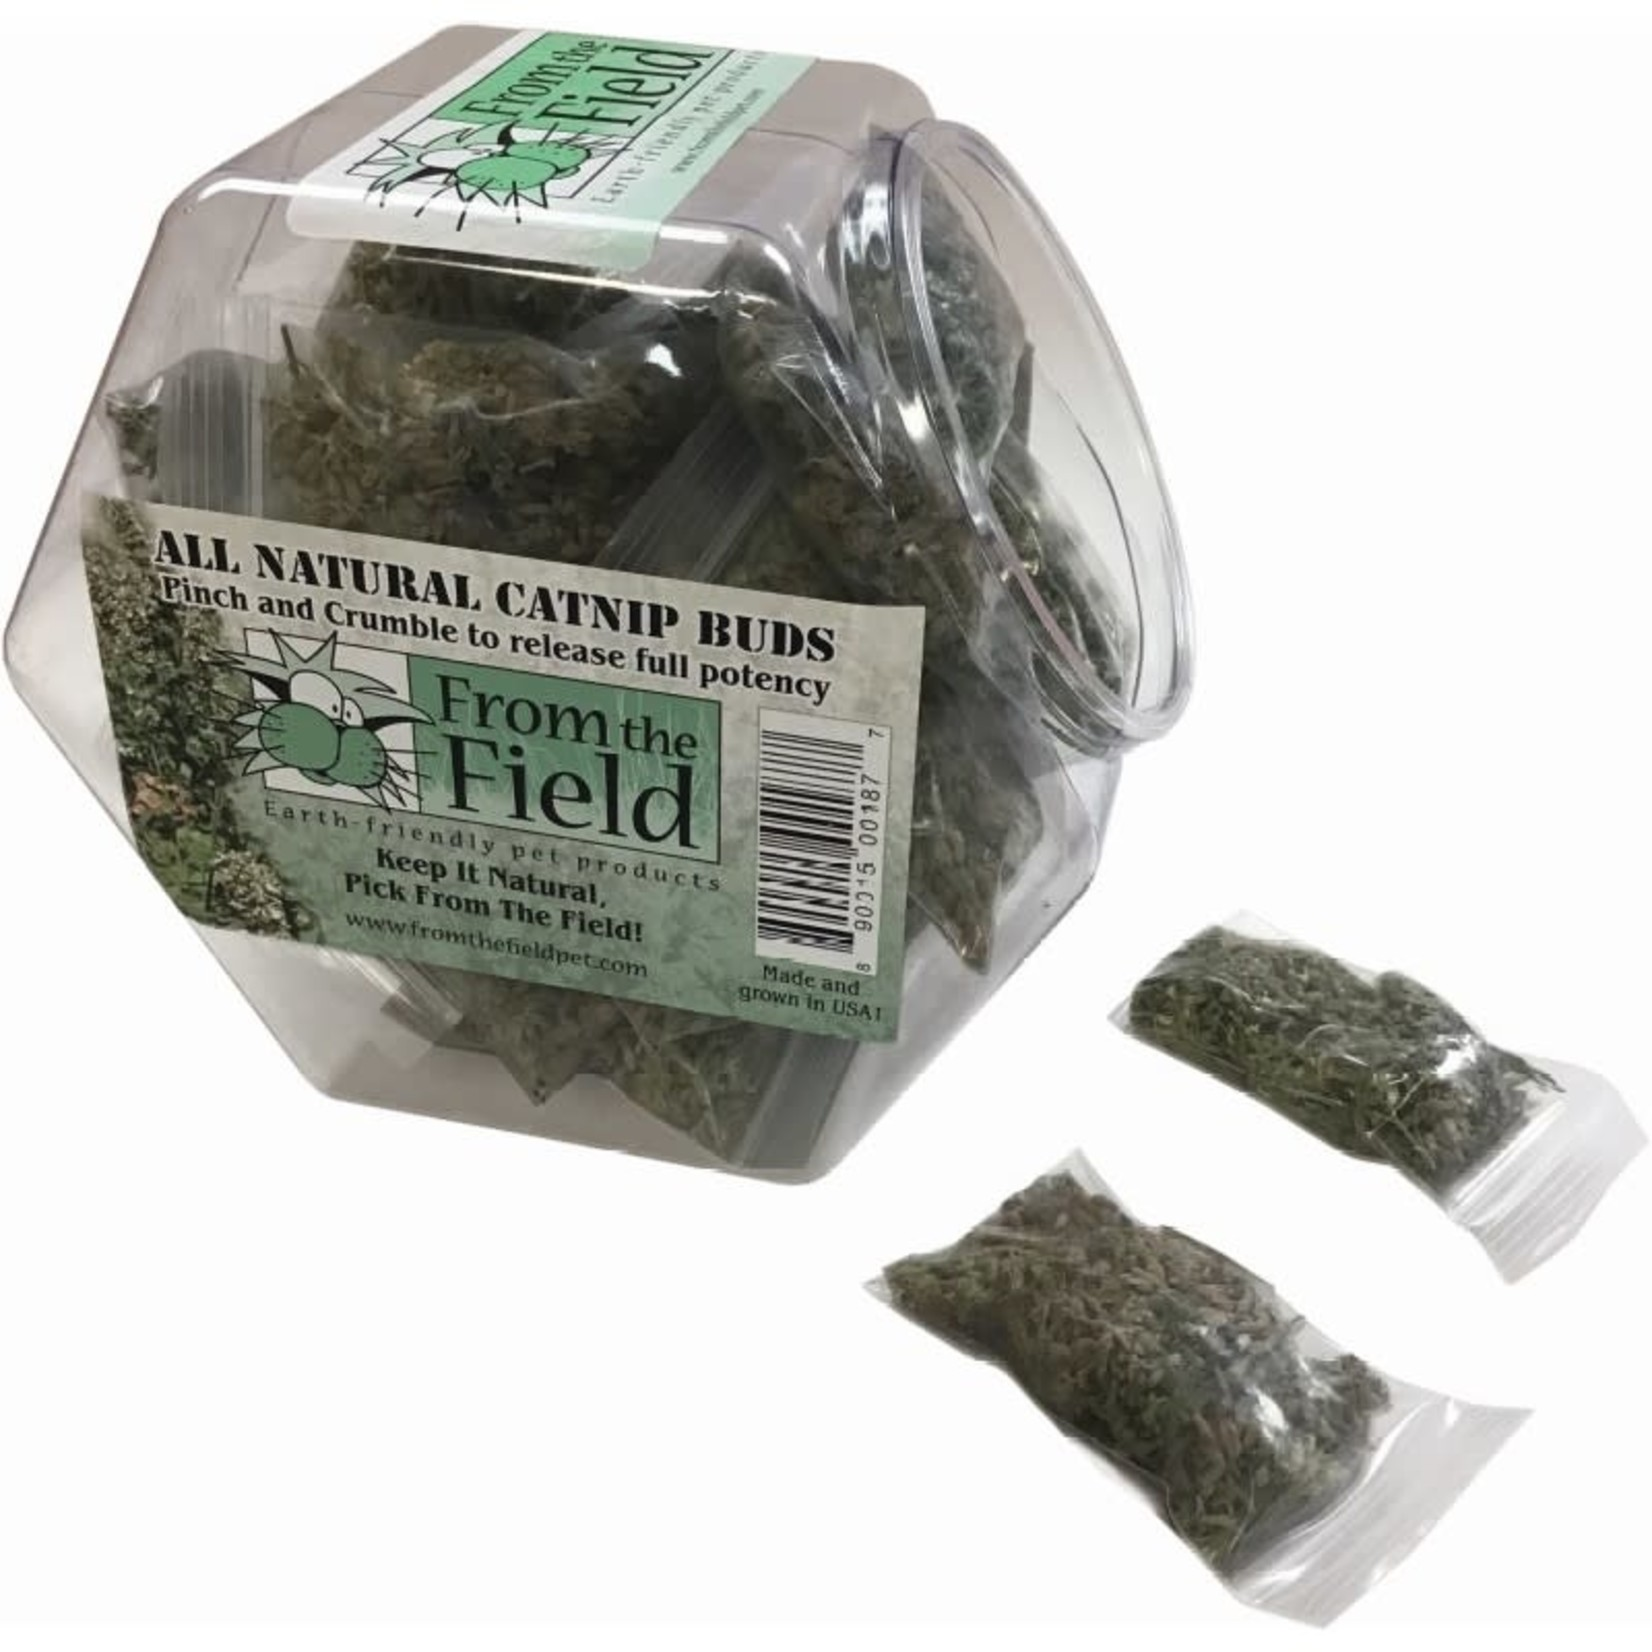 From The Field From The Field All Natural Catnip Buds .2 OZ Bag